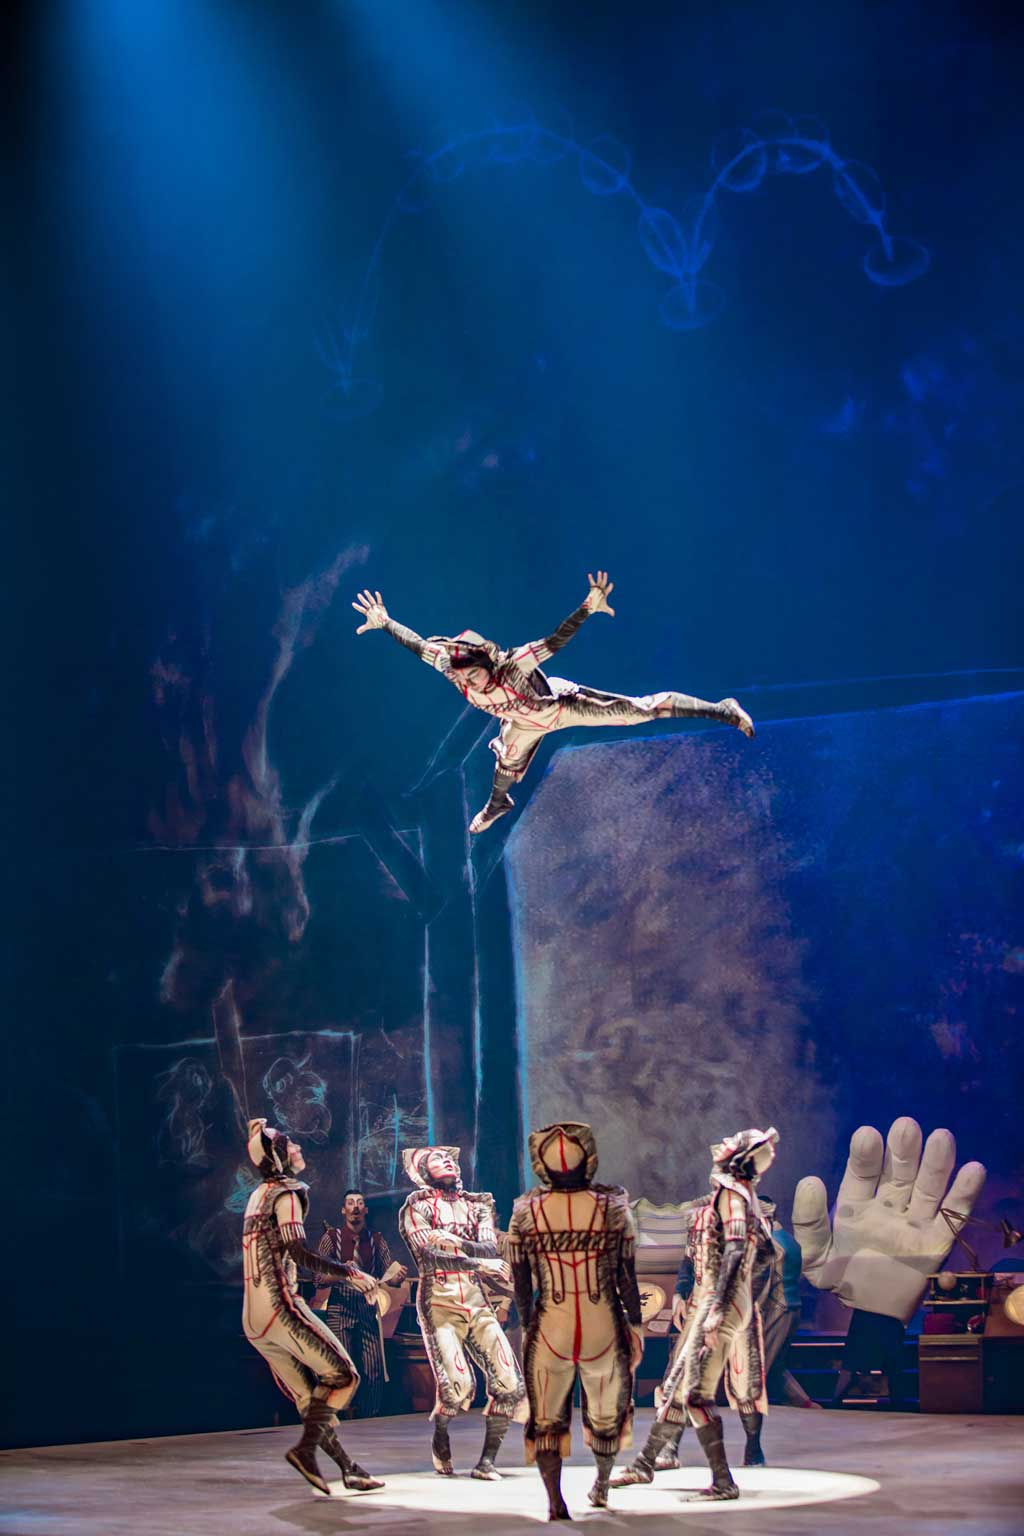 After more than a year of waiting, Cirque du Soleil Entertainment Group and Disney Parks, Experiences and Products are excited to announce that Drawn to Life is scheduled to open on Nov. 18, 2021. The new family-friendly show coming to Walt Disney World Resort in Lake Buena Vista, Fla., is a collaboration between Cirque du Soleil, Walt Disney Animation Studios and Walt Disney Imagineering and will take residency at Disney Springs (Matt Beard, Photographer).